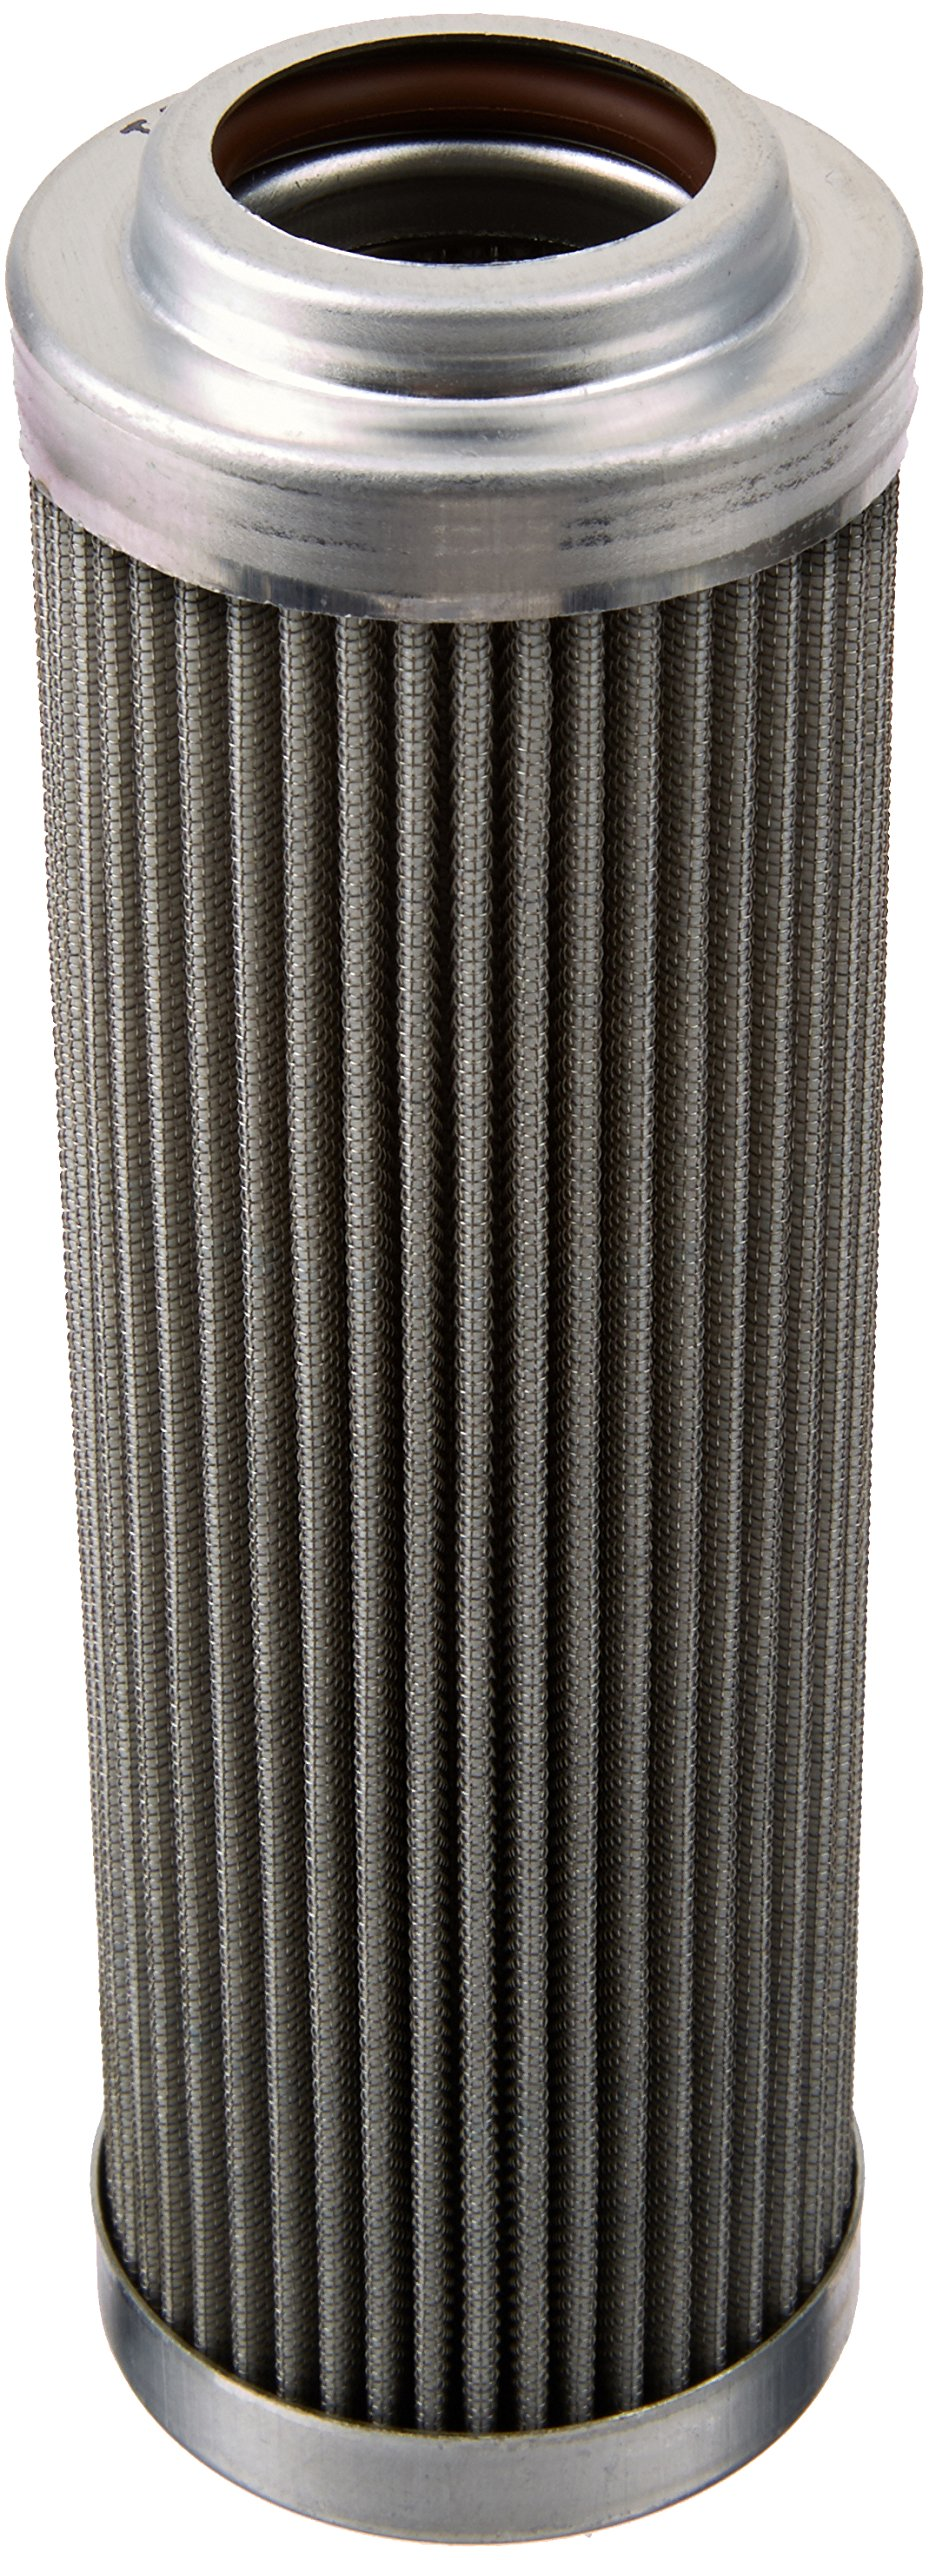 Fuelab 71808 5'' 6 Micron Micro-Fiberglass Filter Element with 2 Ring